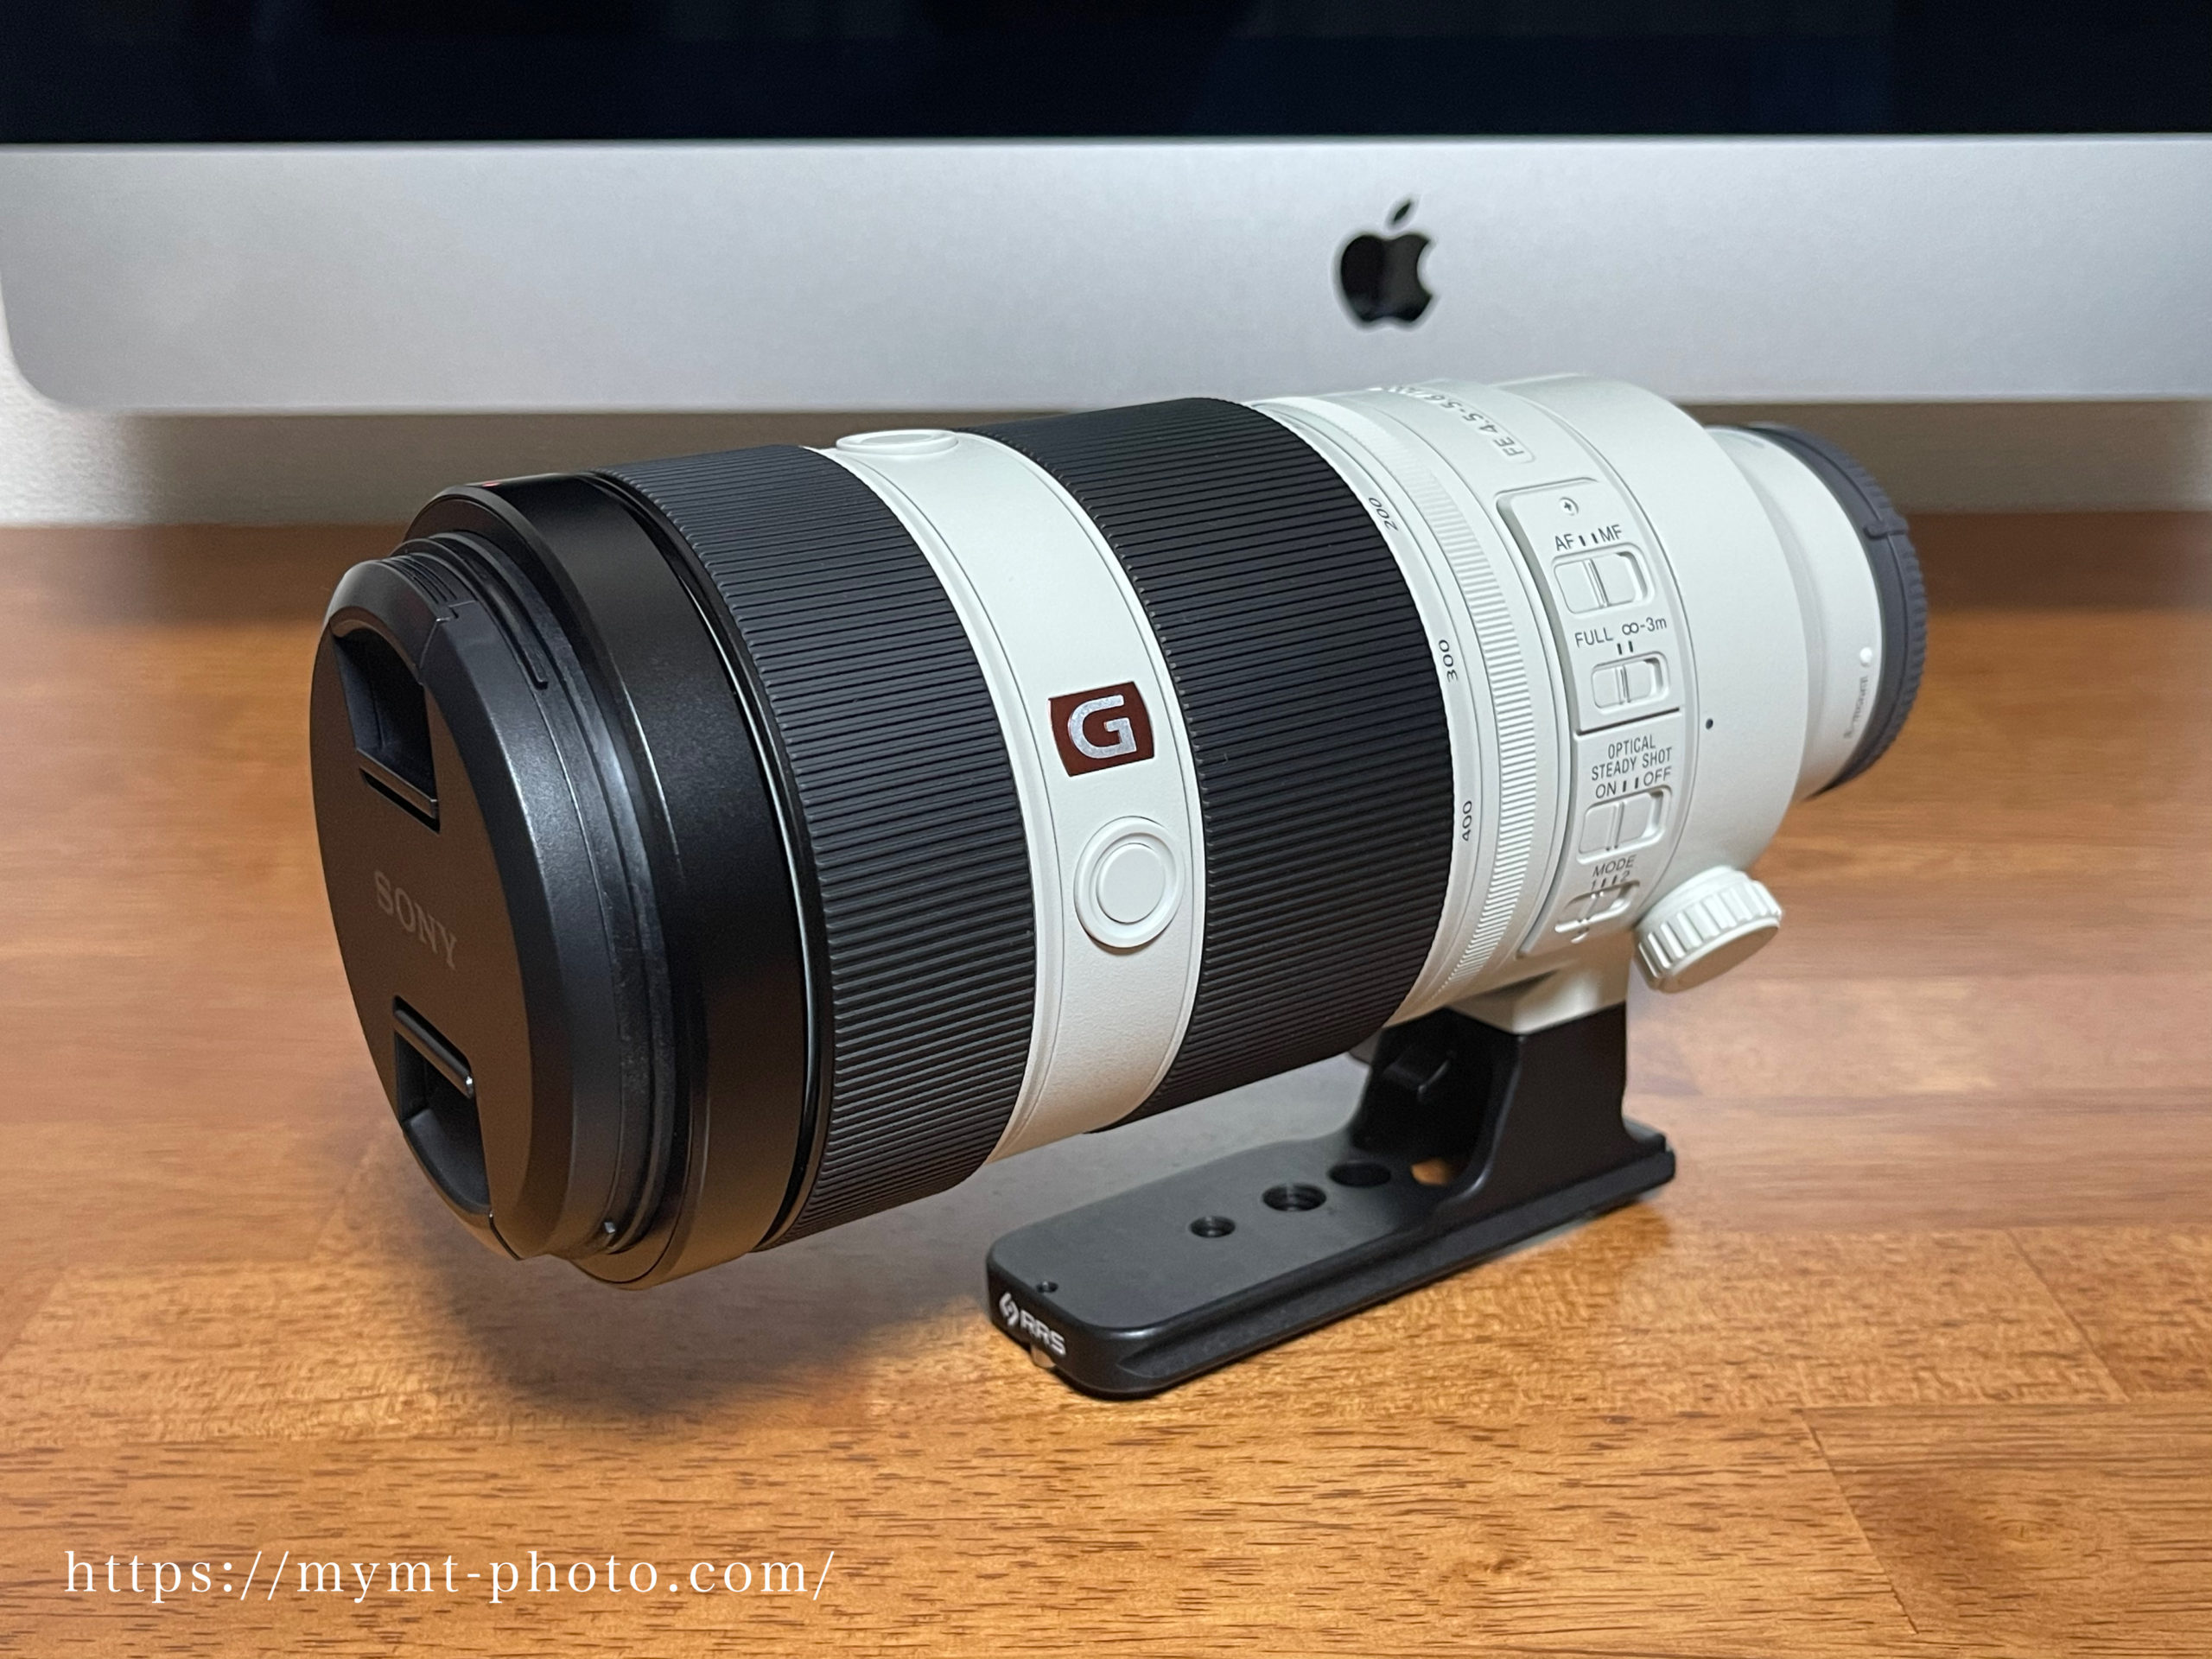 ソニー FE 100-400mm F4.5-5.6 GM OSS SEL100400GMにReally Right Stuff製100-400のフットを装着